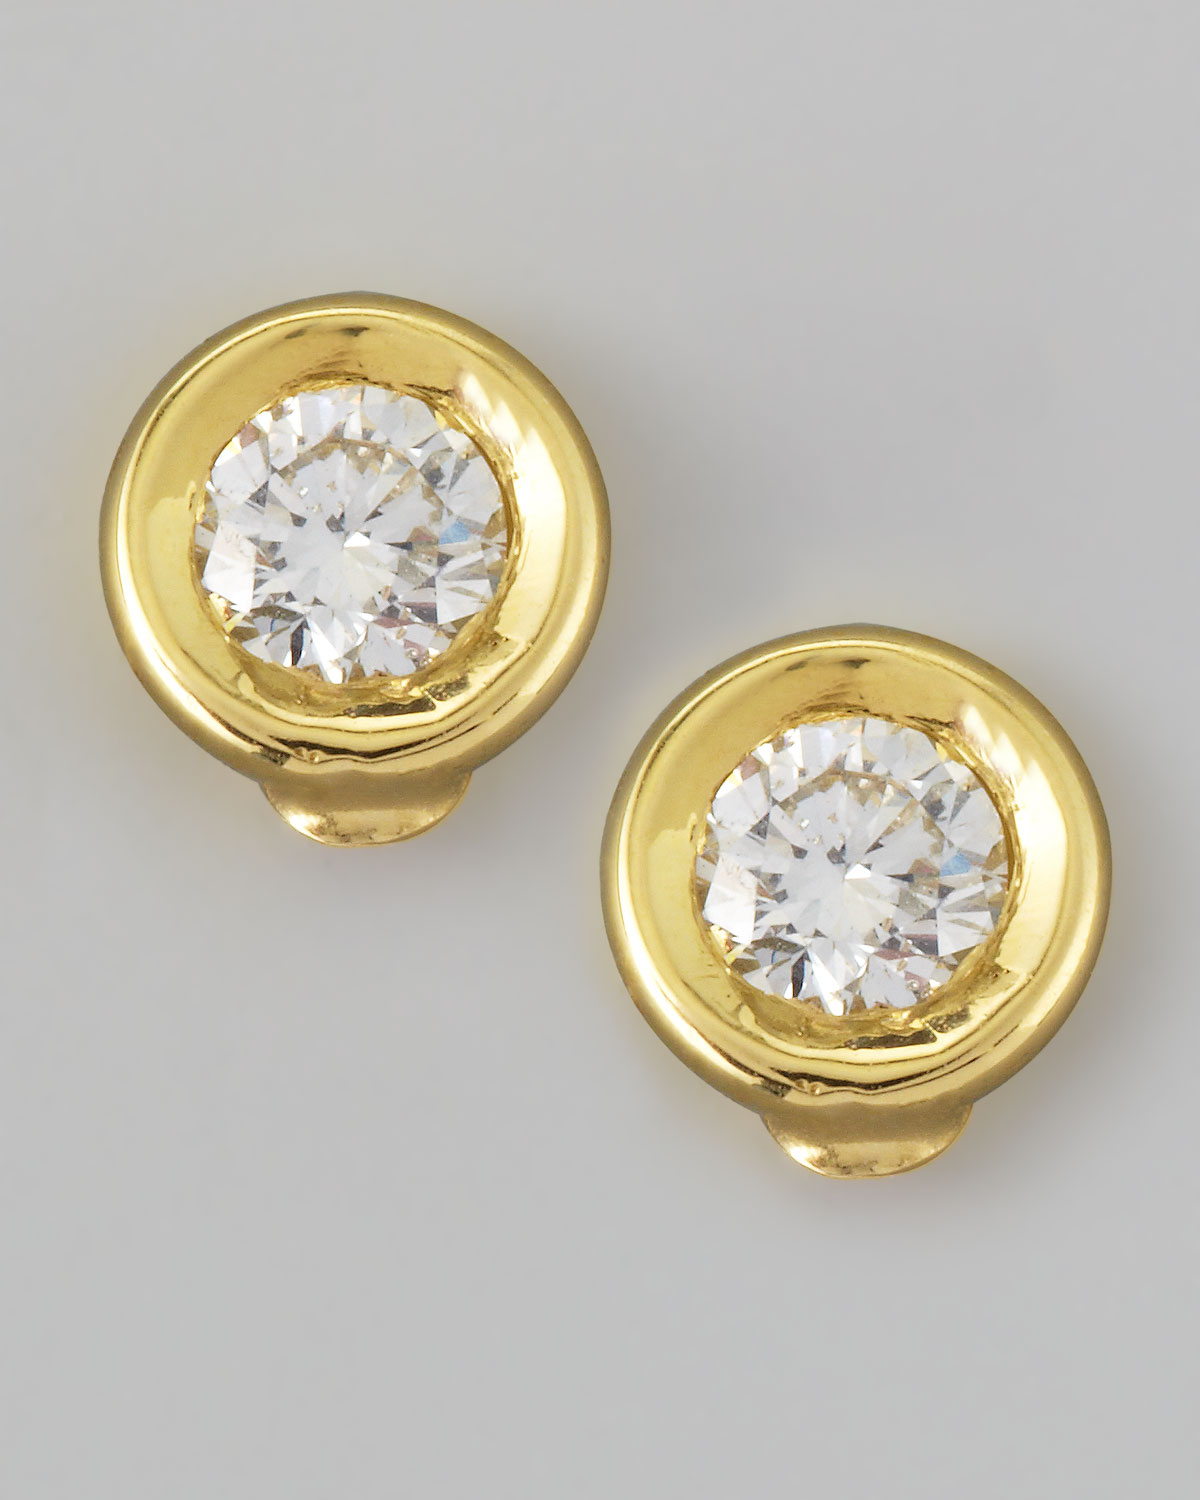 Roberto Coin 18k Yellow Gold Diamond Solitaire Stud